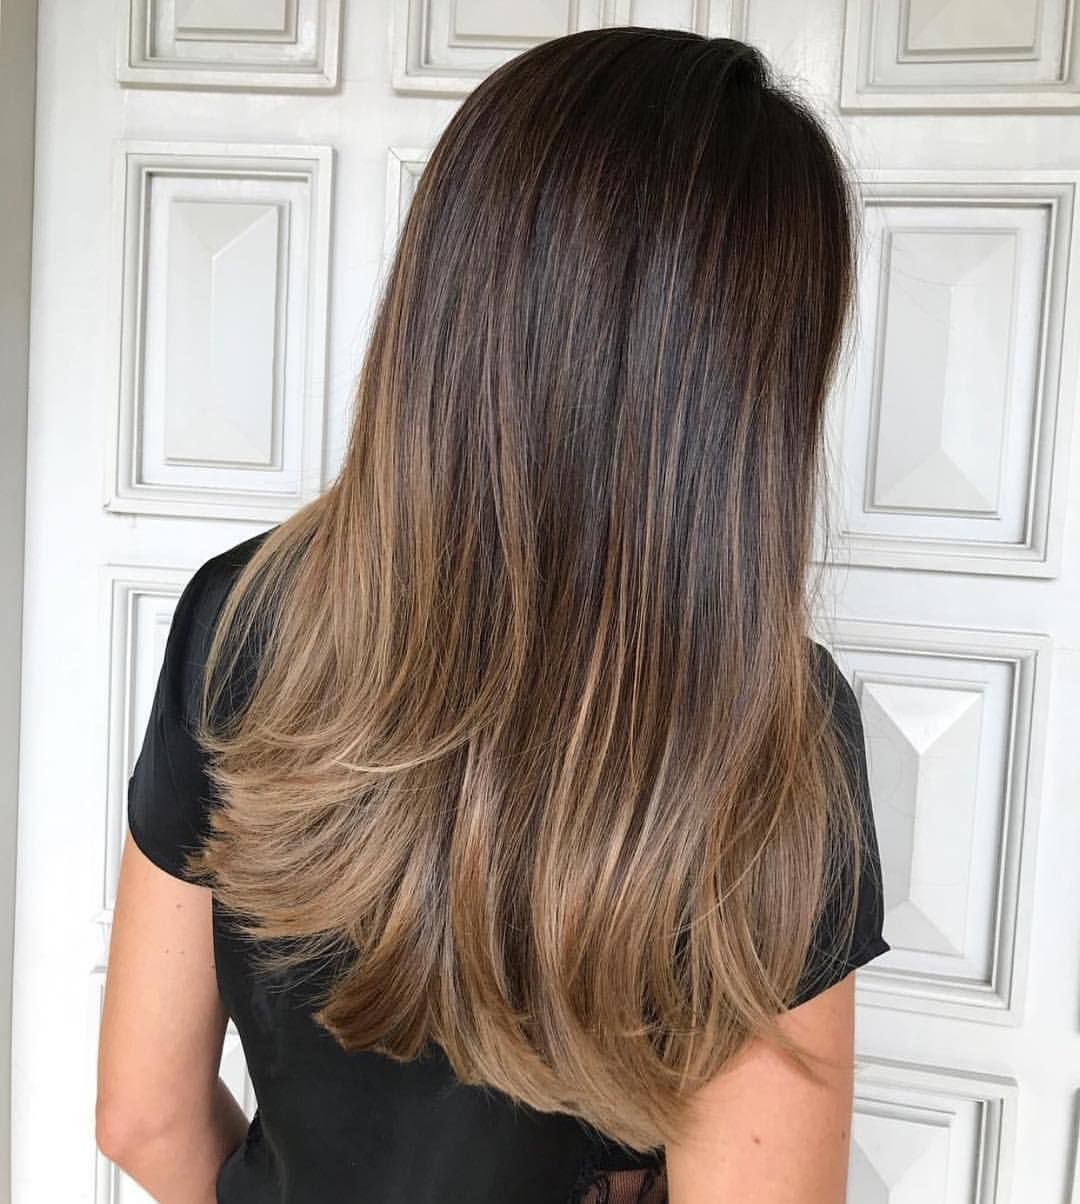 Inspiration For Brunettes That Wants A Hint Of Golden Balayage But Still Maintain Their Base D Hair Color Flamboyage Hair Color For Morena Brown Hair Balayage